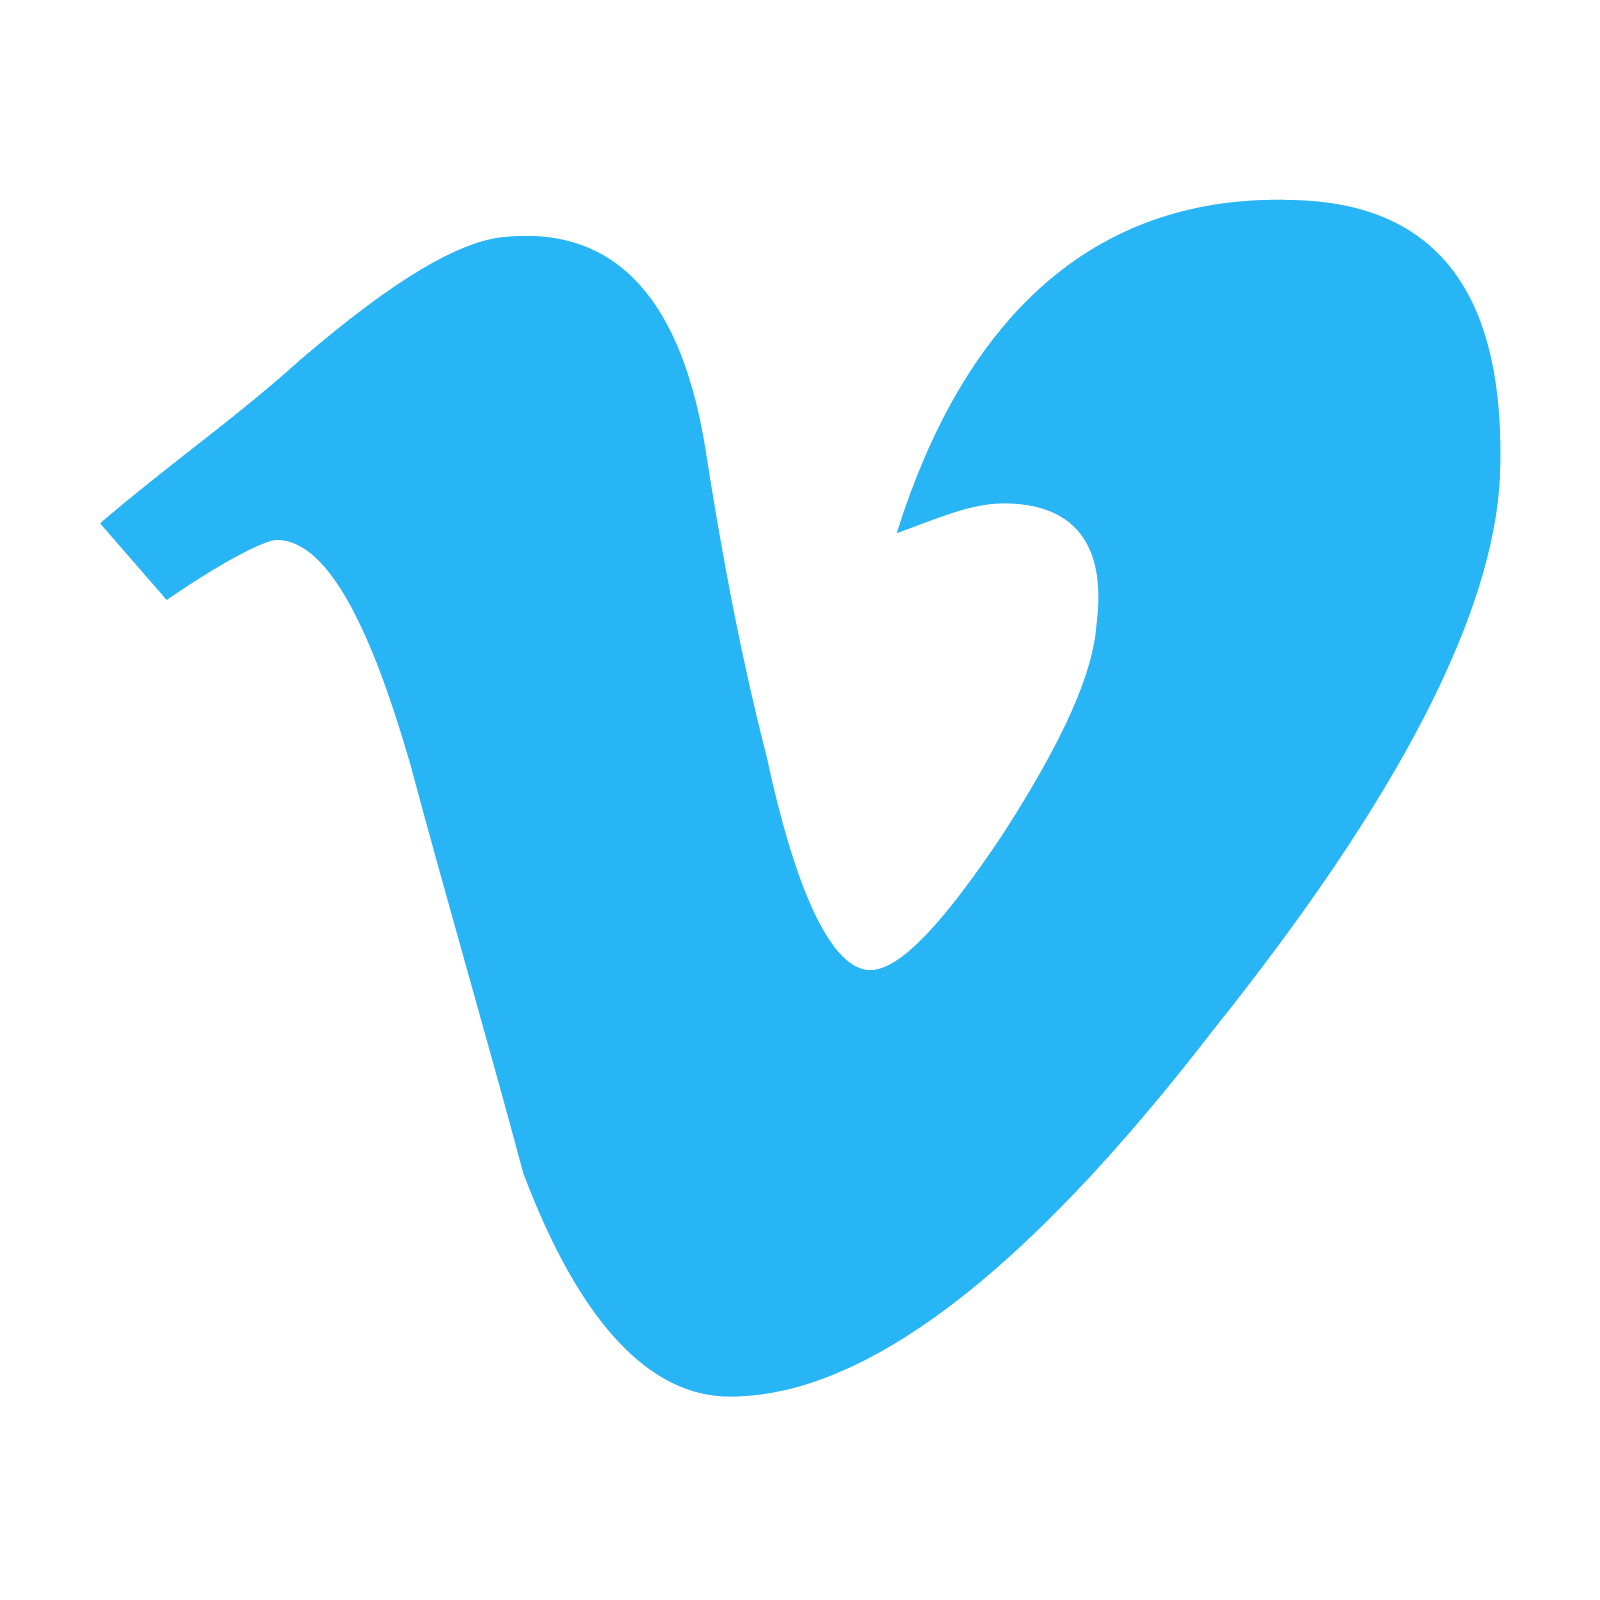 Vimeo icon. PNG 50 px - Vimeo PNG